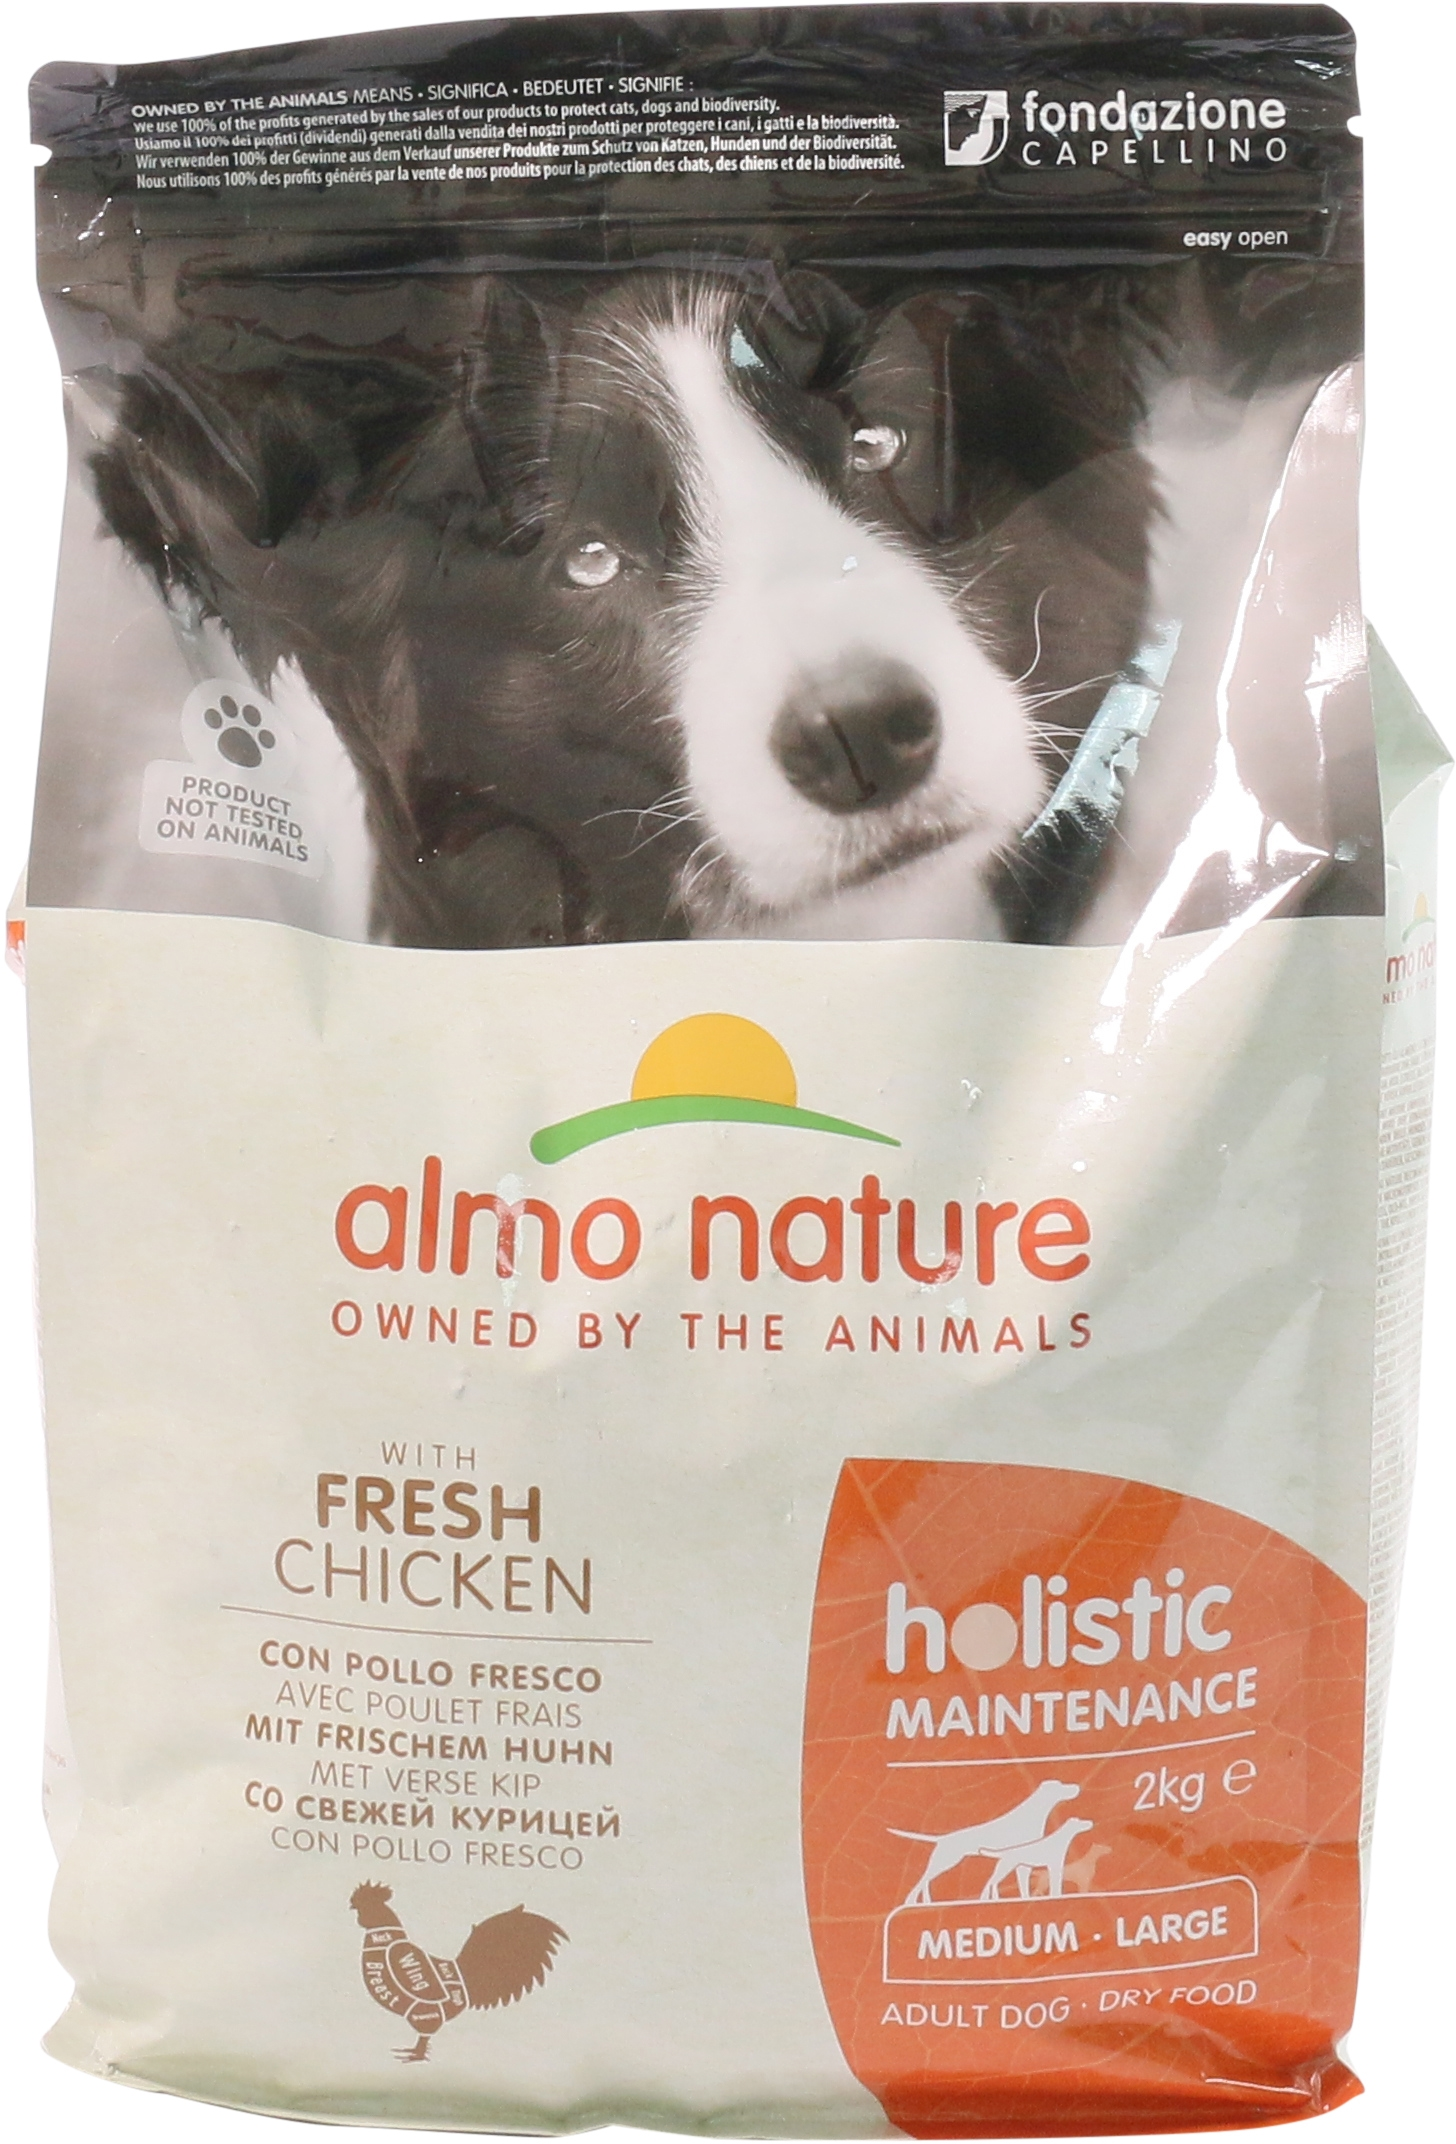 HOLISTIC MAINTENANCE CON POLLO FRESCO MEDIUM- LARGE ADULT DOG